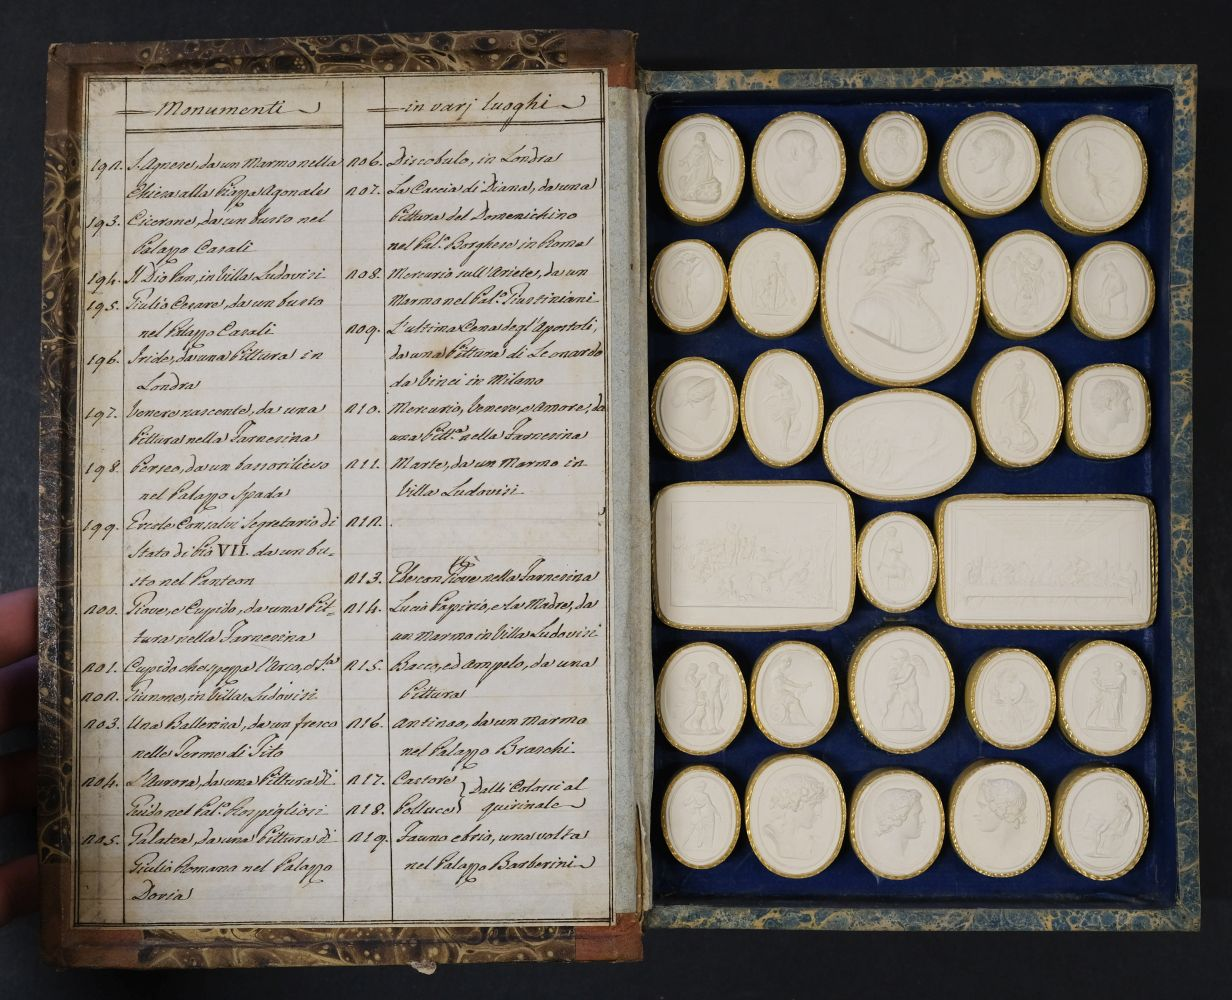 Paoletti (Bartolomeo and Pietro). A collection of 300 plaster cameos, 1820 - Image 9 of 16